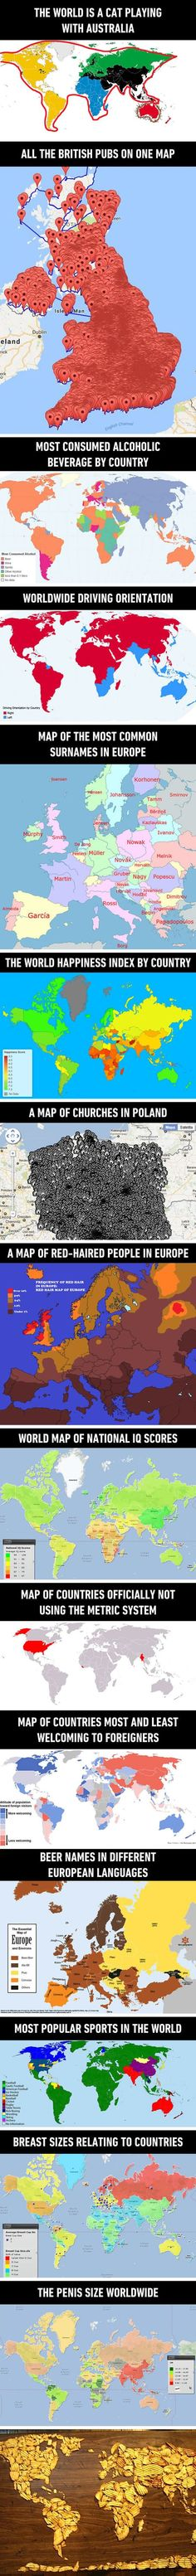 15 Amazing maps of the world that school didn't show us